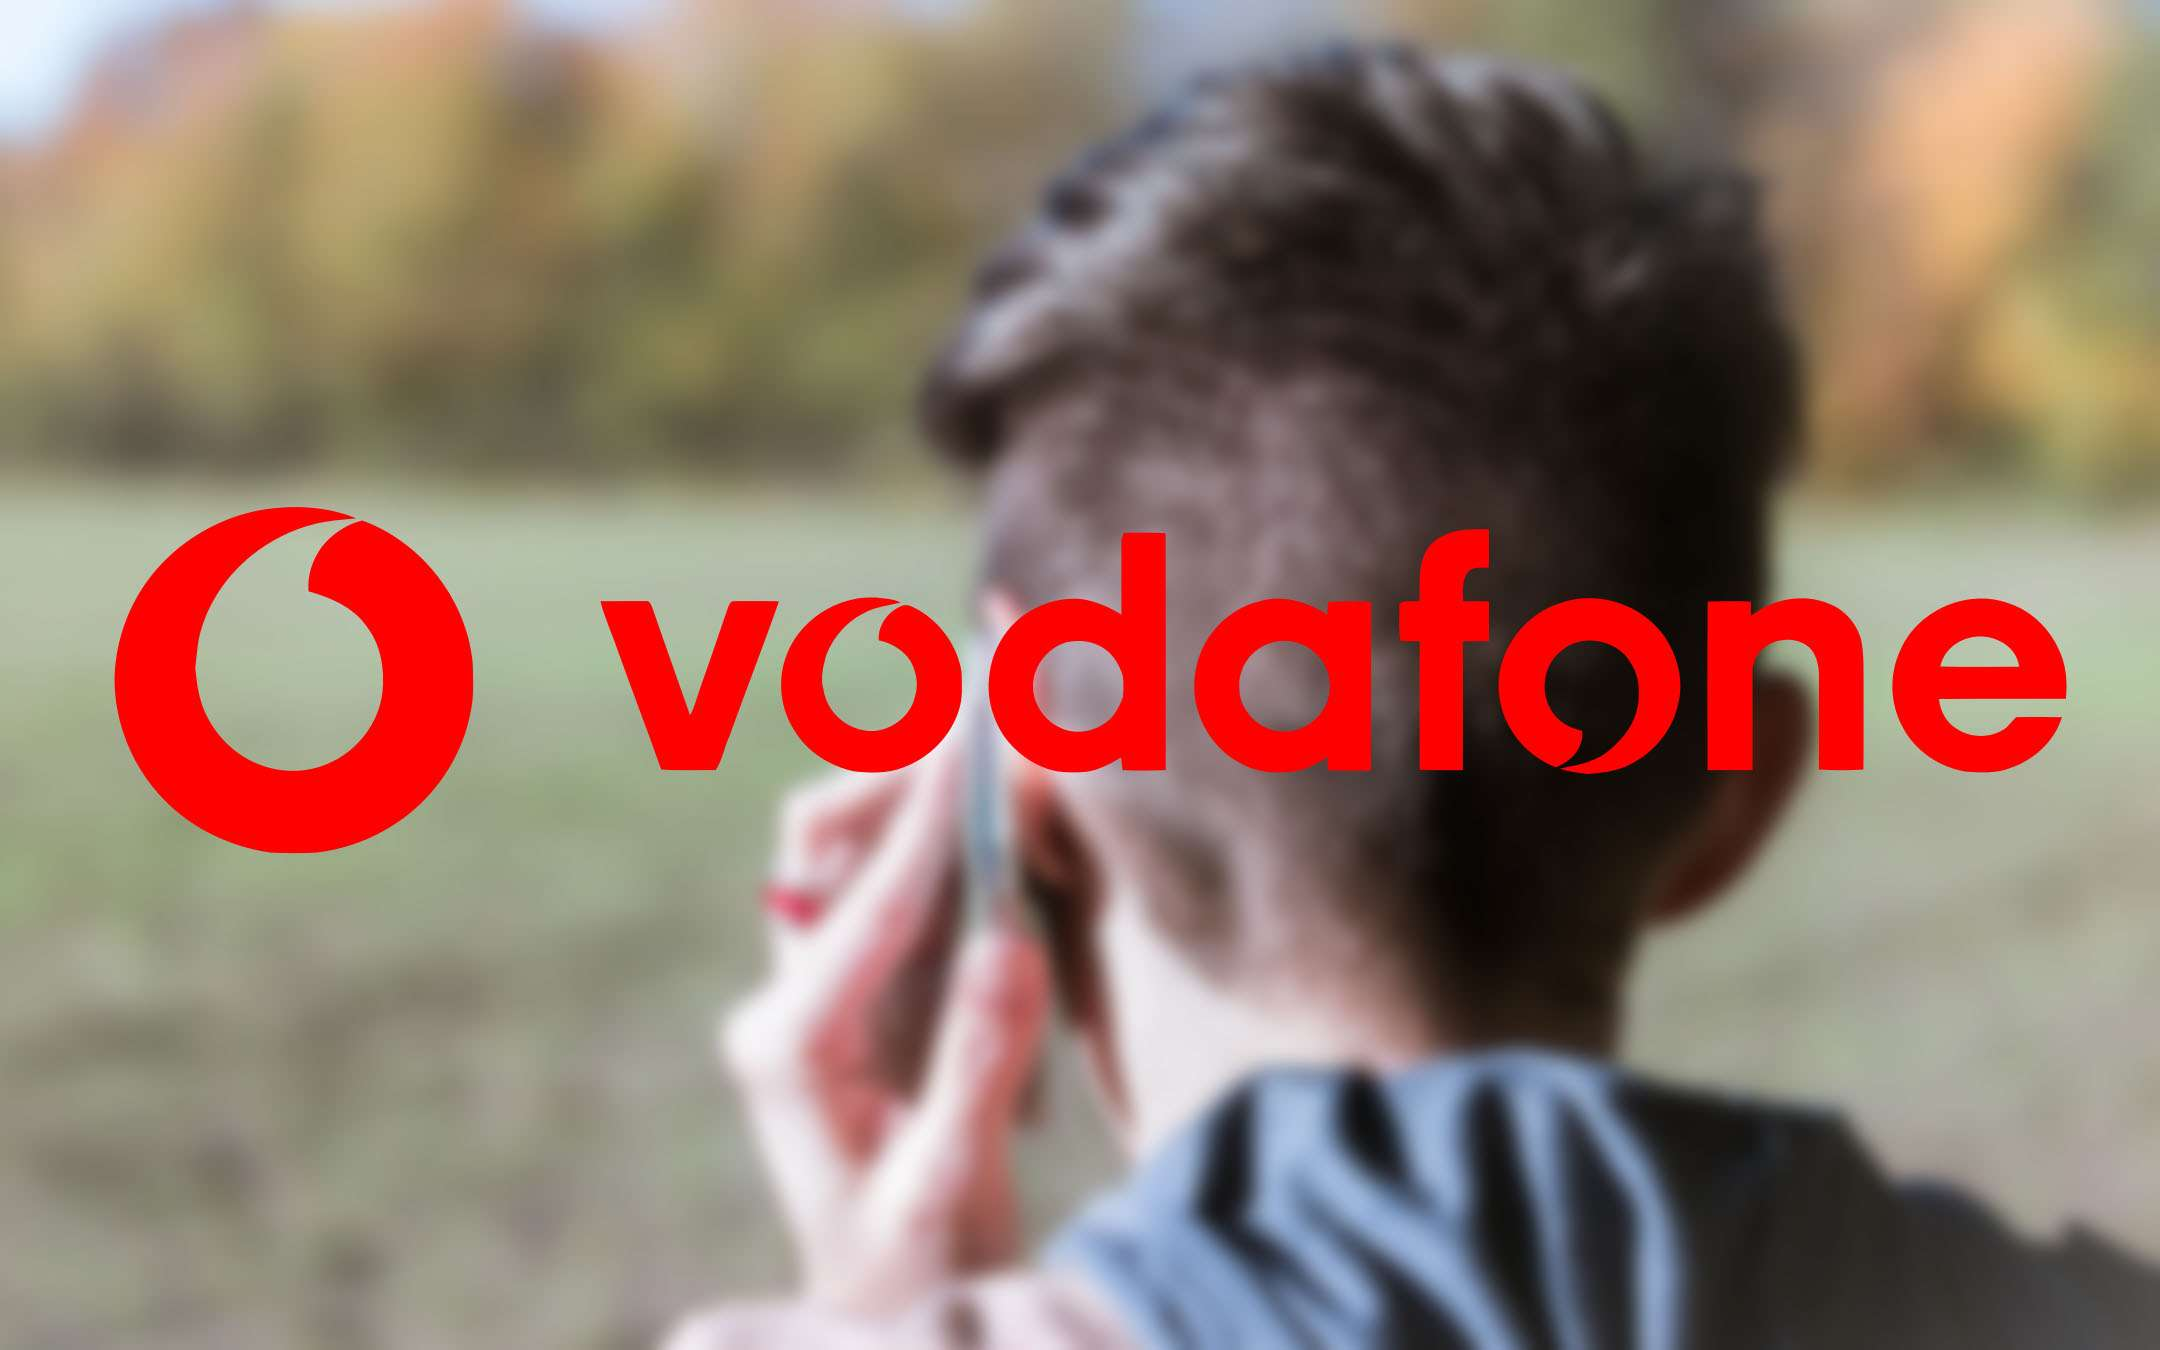 Vodafone Simple Digital: minuti, SMS e 20 Giga